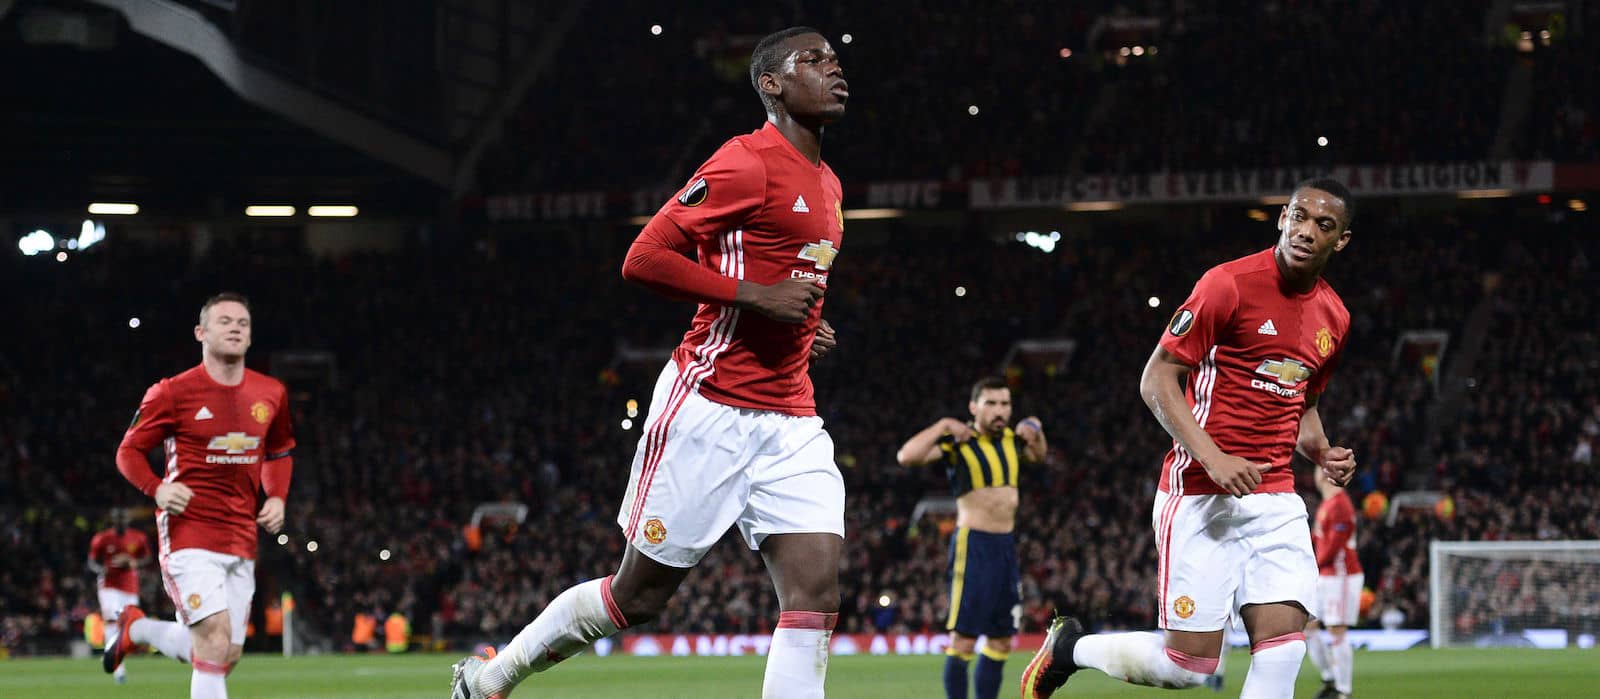 Man United fans disappointed with Paul Pogba's performance against Man City